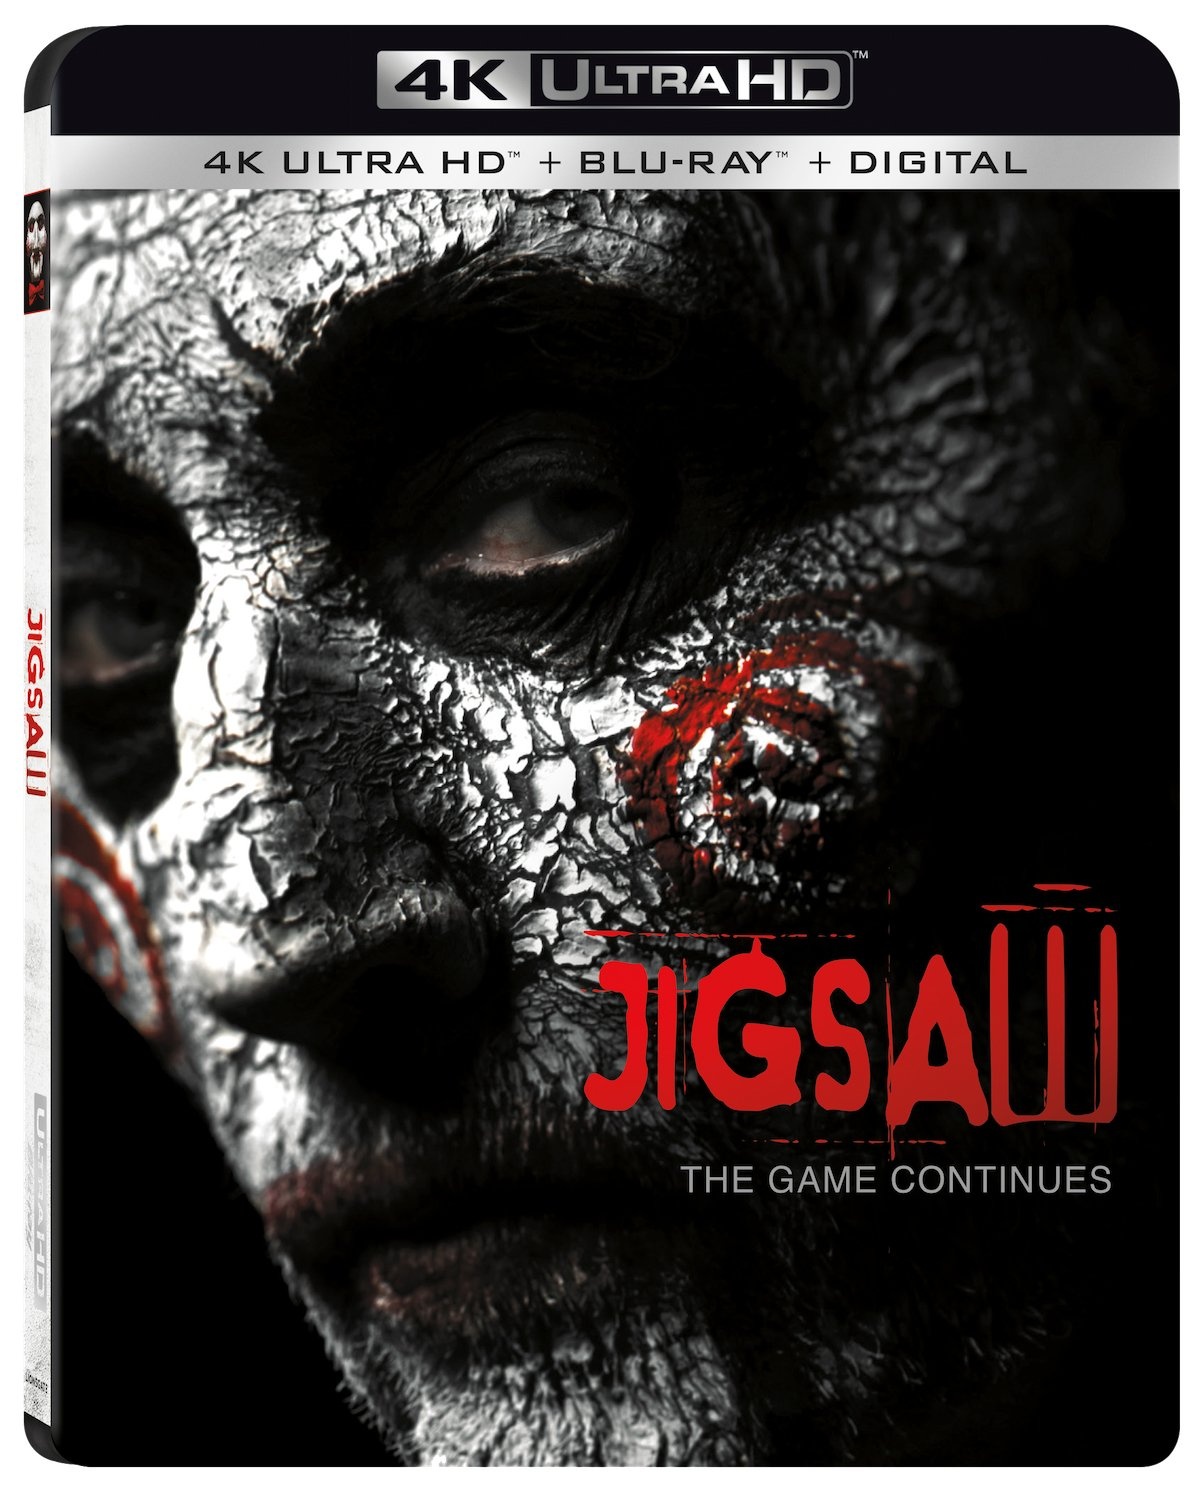 The Game Continues When Jigsaw Arrives On Blu-Ray Next Month